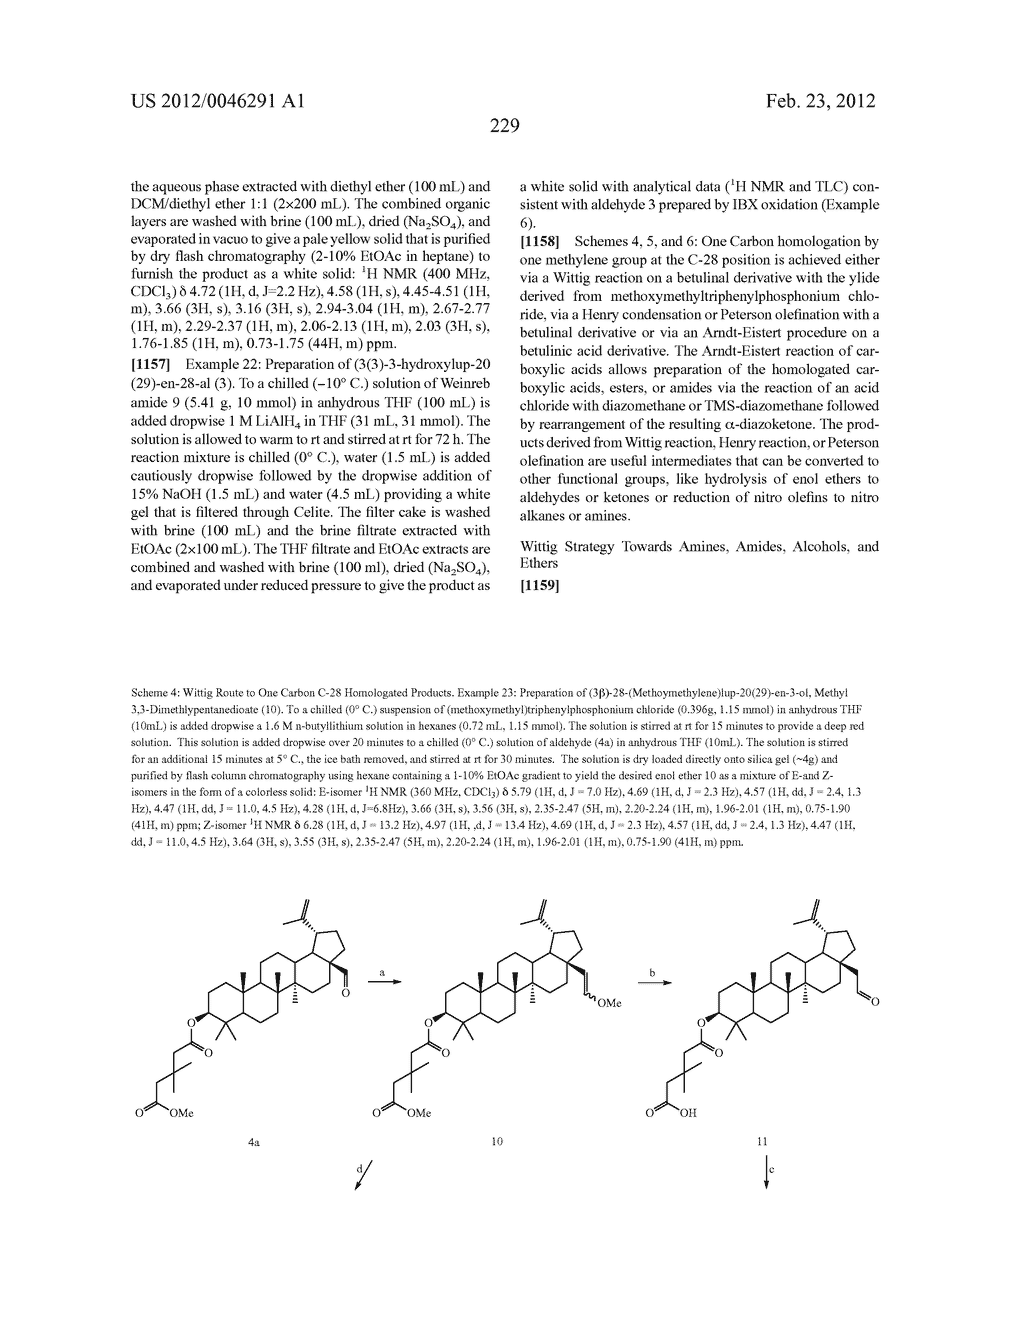 Extended Triterpene Derivatives - diagram, schematic, and image 229